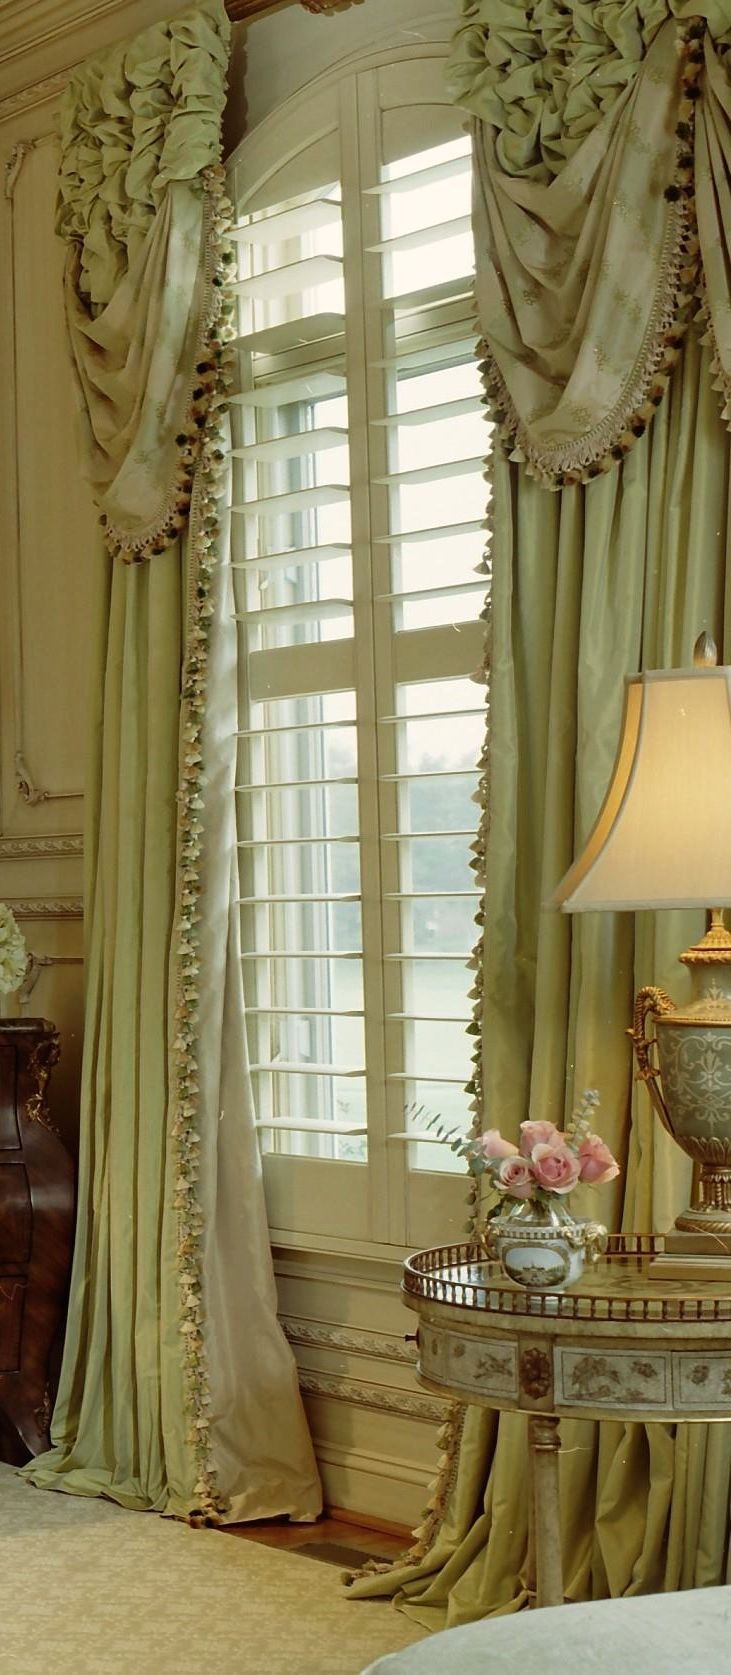 Cobalt blue window treatments - Find This Pin And More On Window Treatments